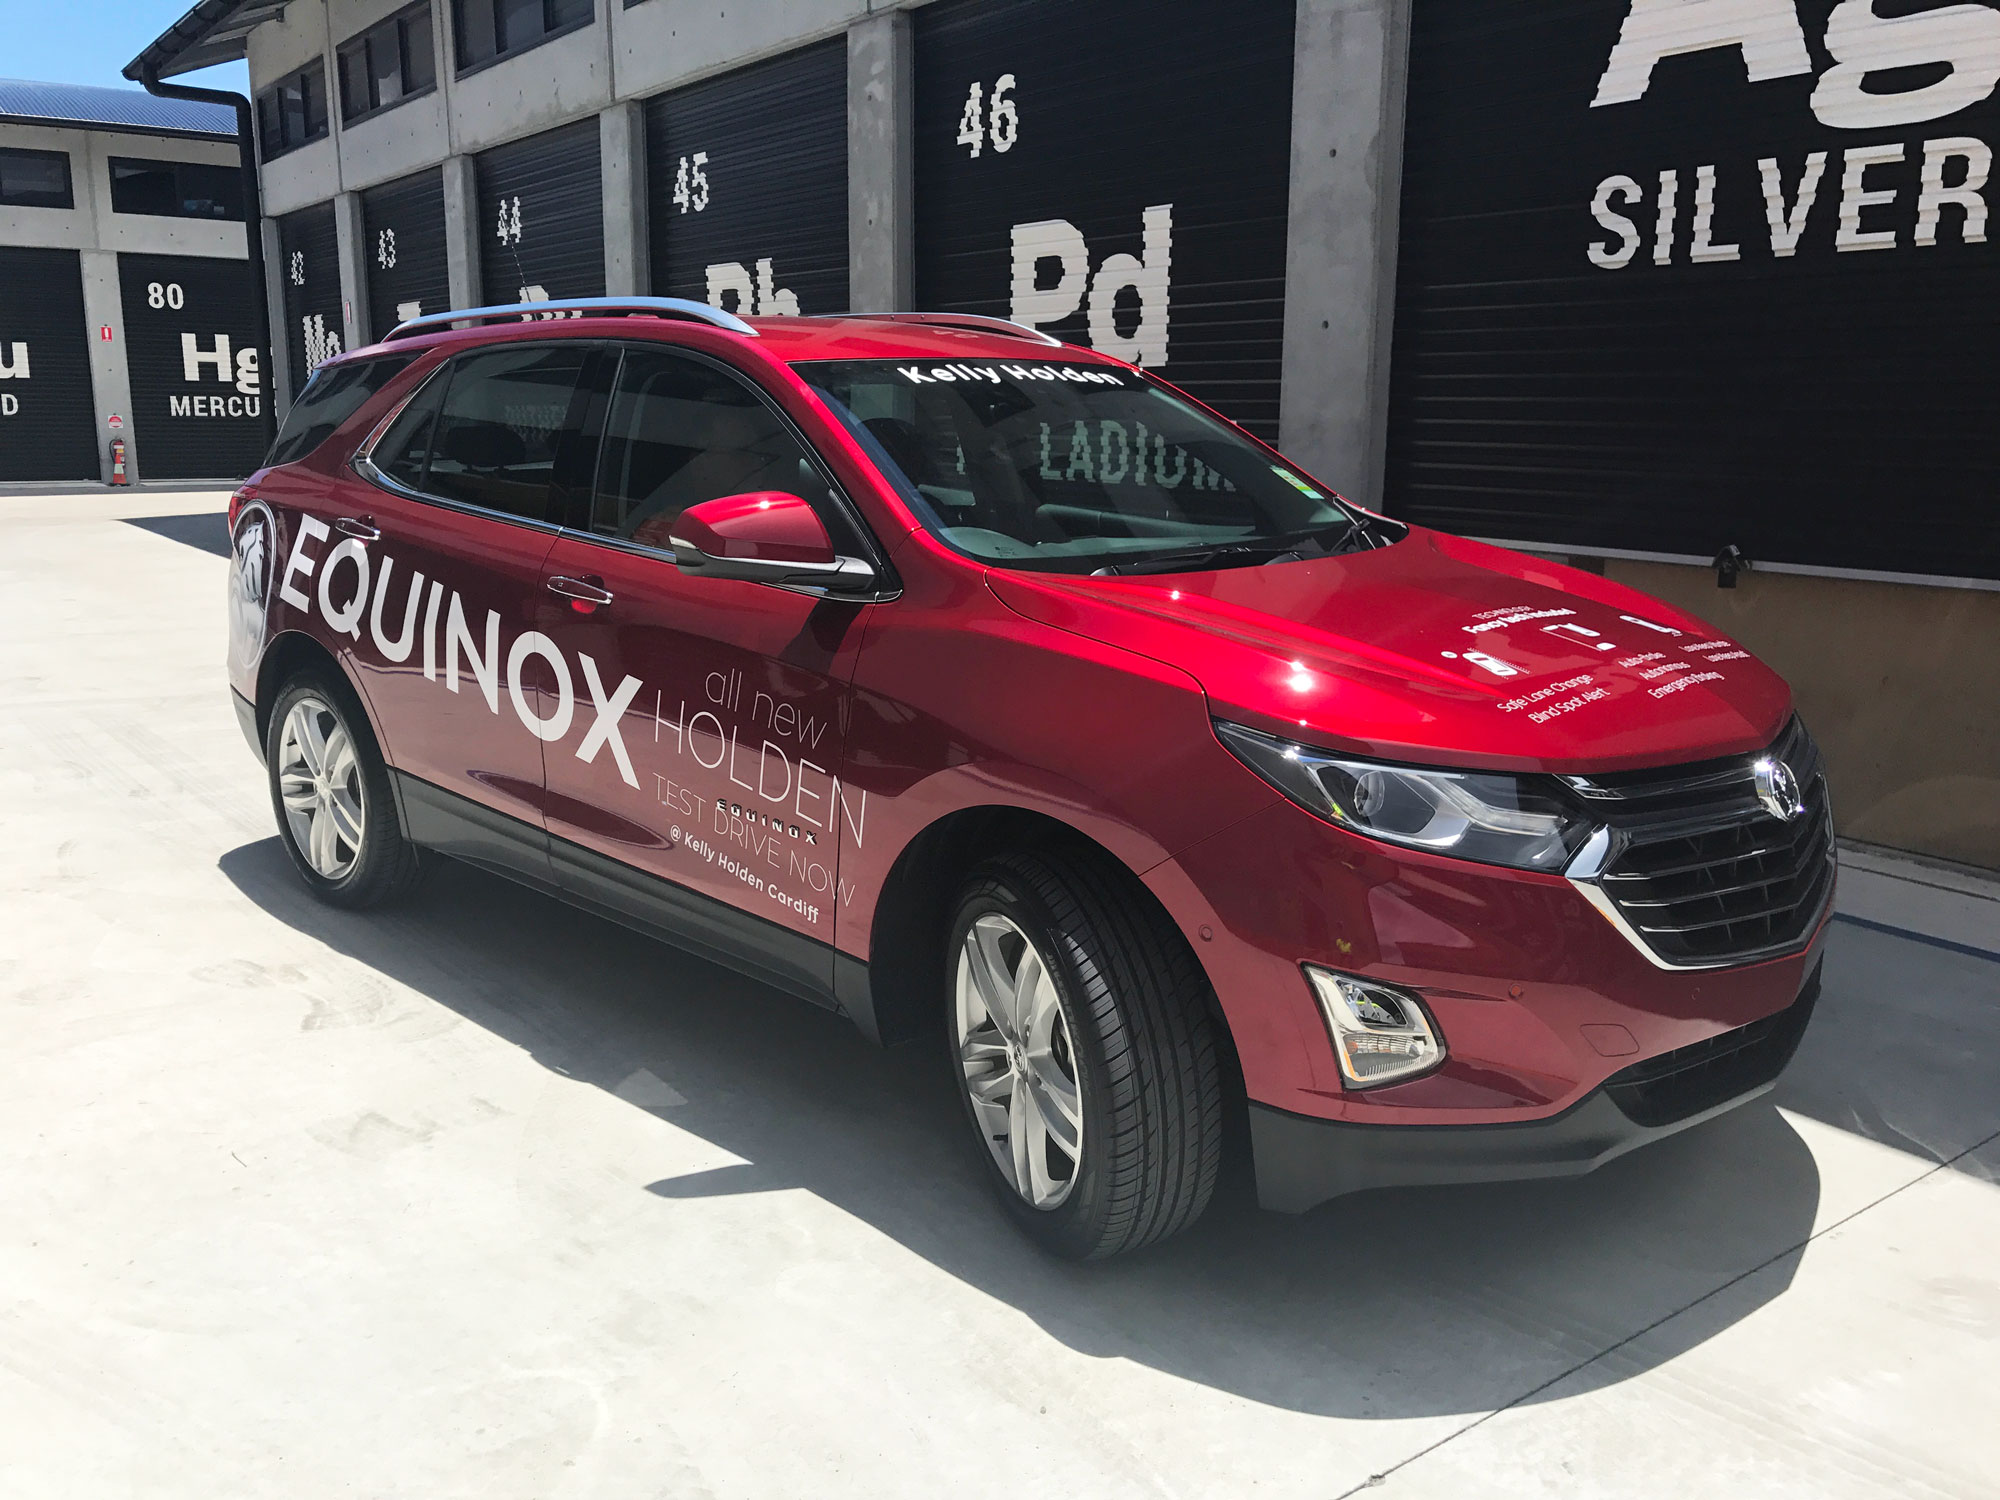 equinox-car-promotional-signs-driver-side.jpg